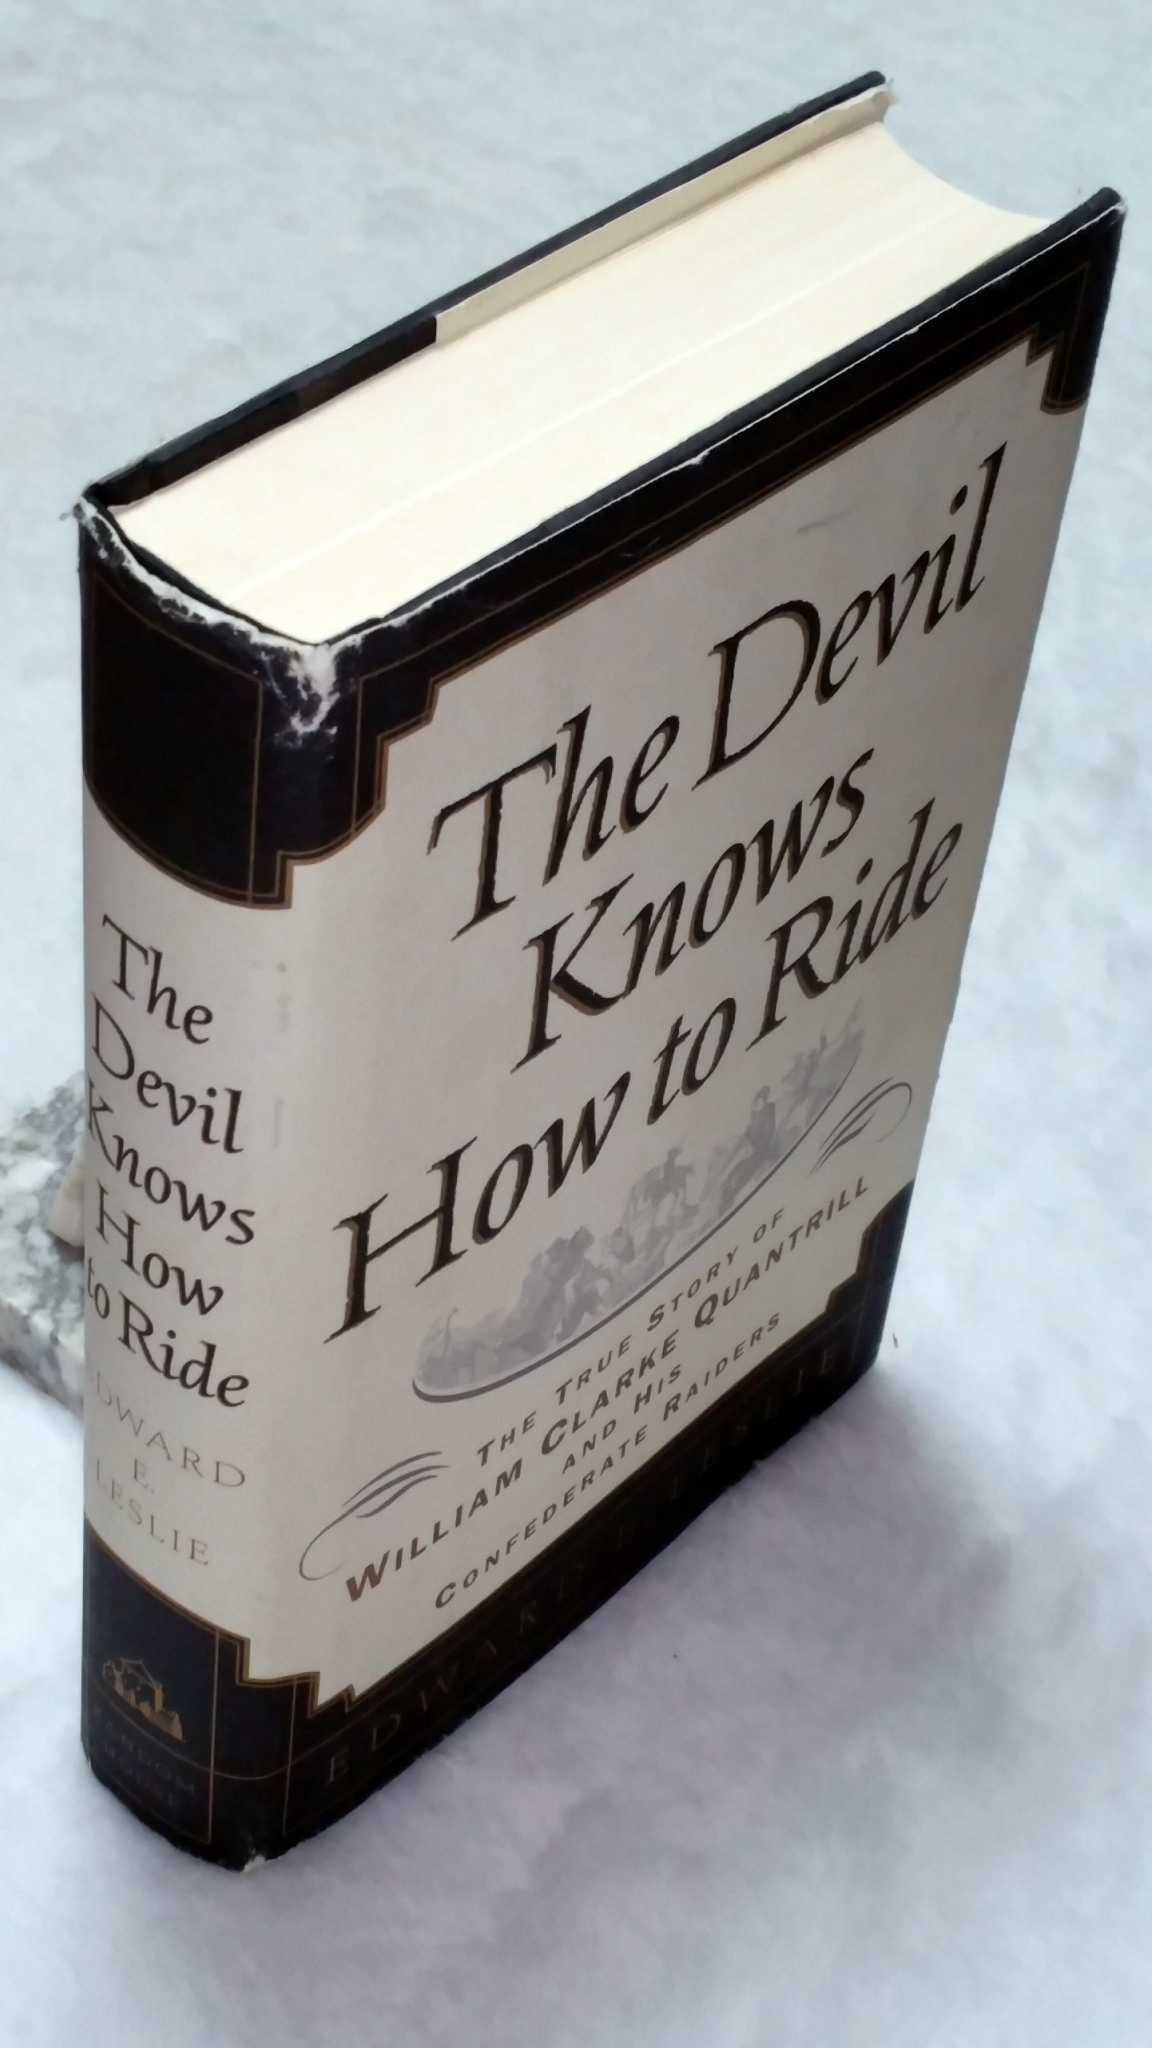 Image for The Devil Knows How to Ride: The True Story of William Clarke Quantrill and His Confederate Raiders